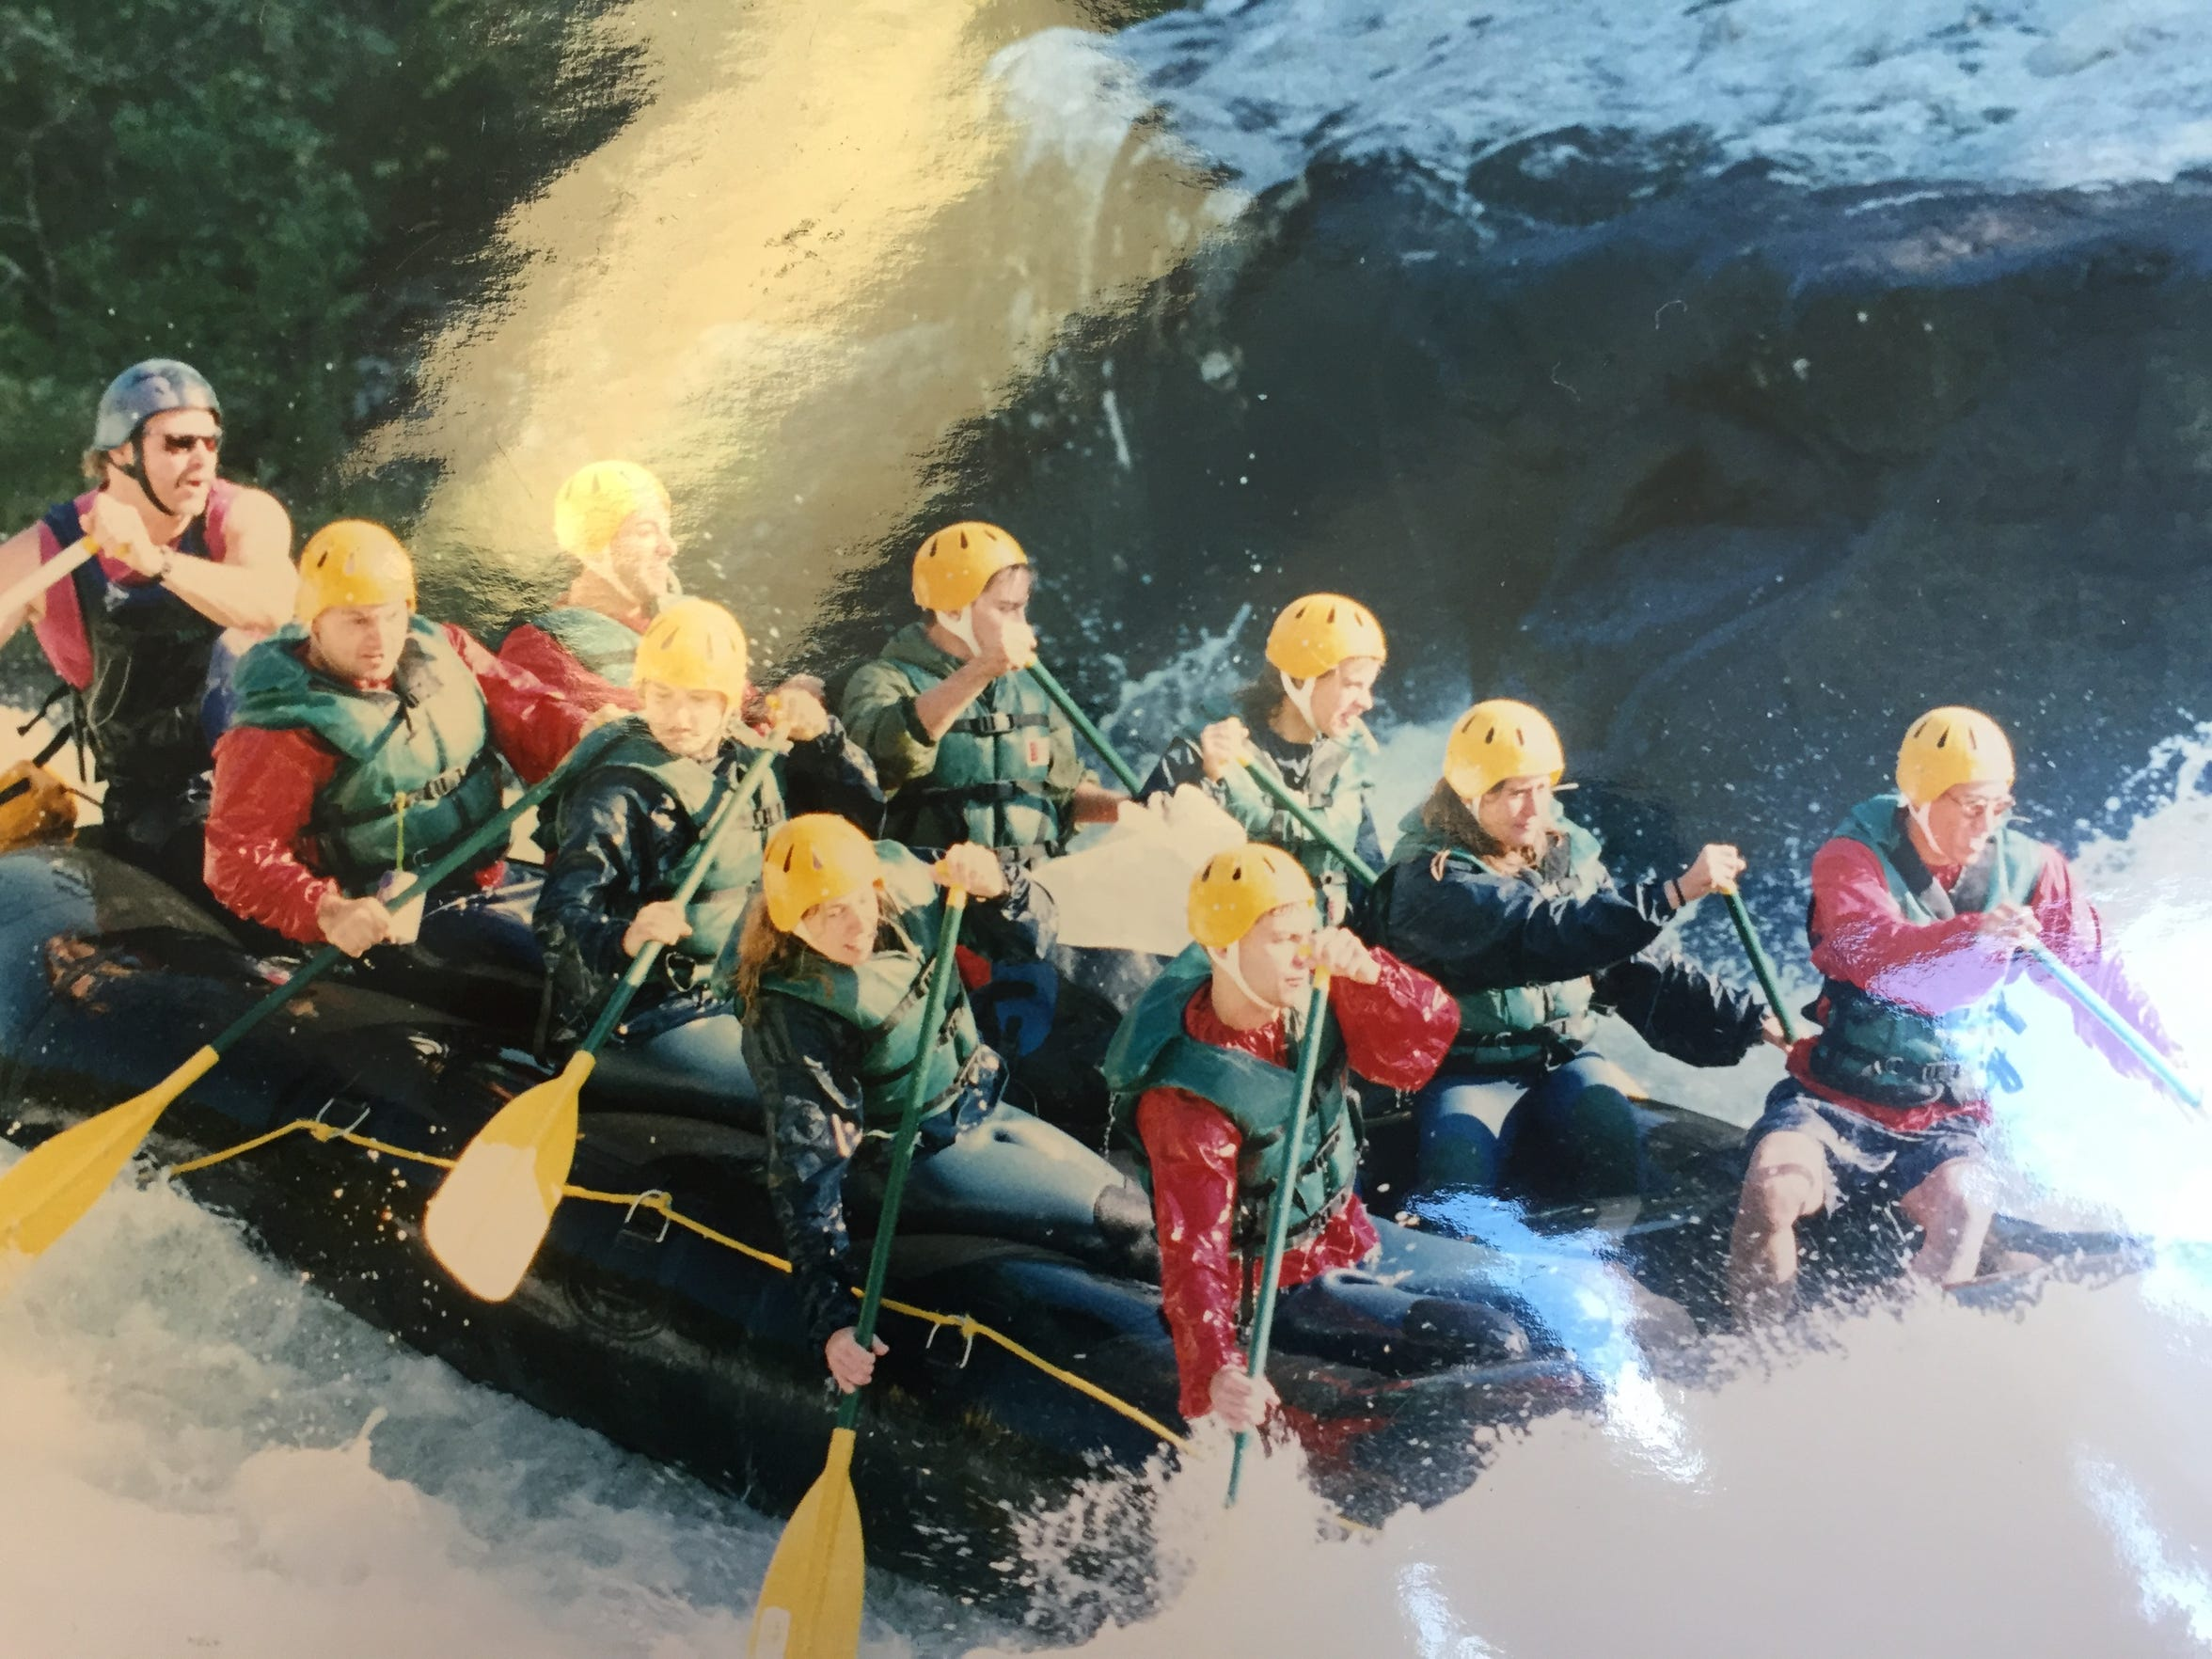 Sitting in the back of the raft is David Paulk, aka Bigwave Dave. Paulk was a whitewater rafting guide for 25 years.